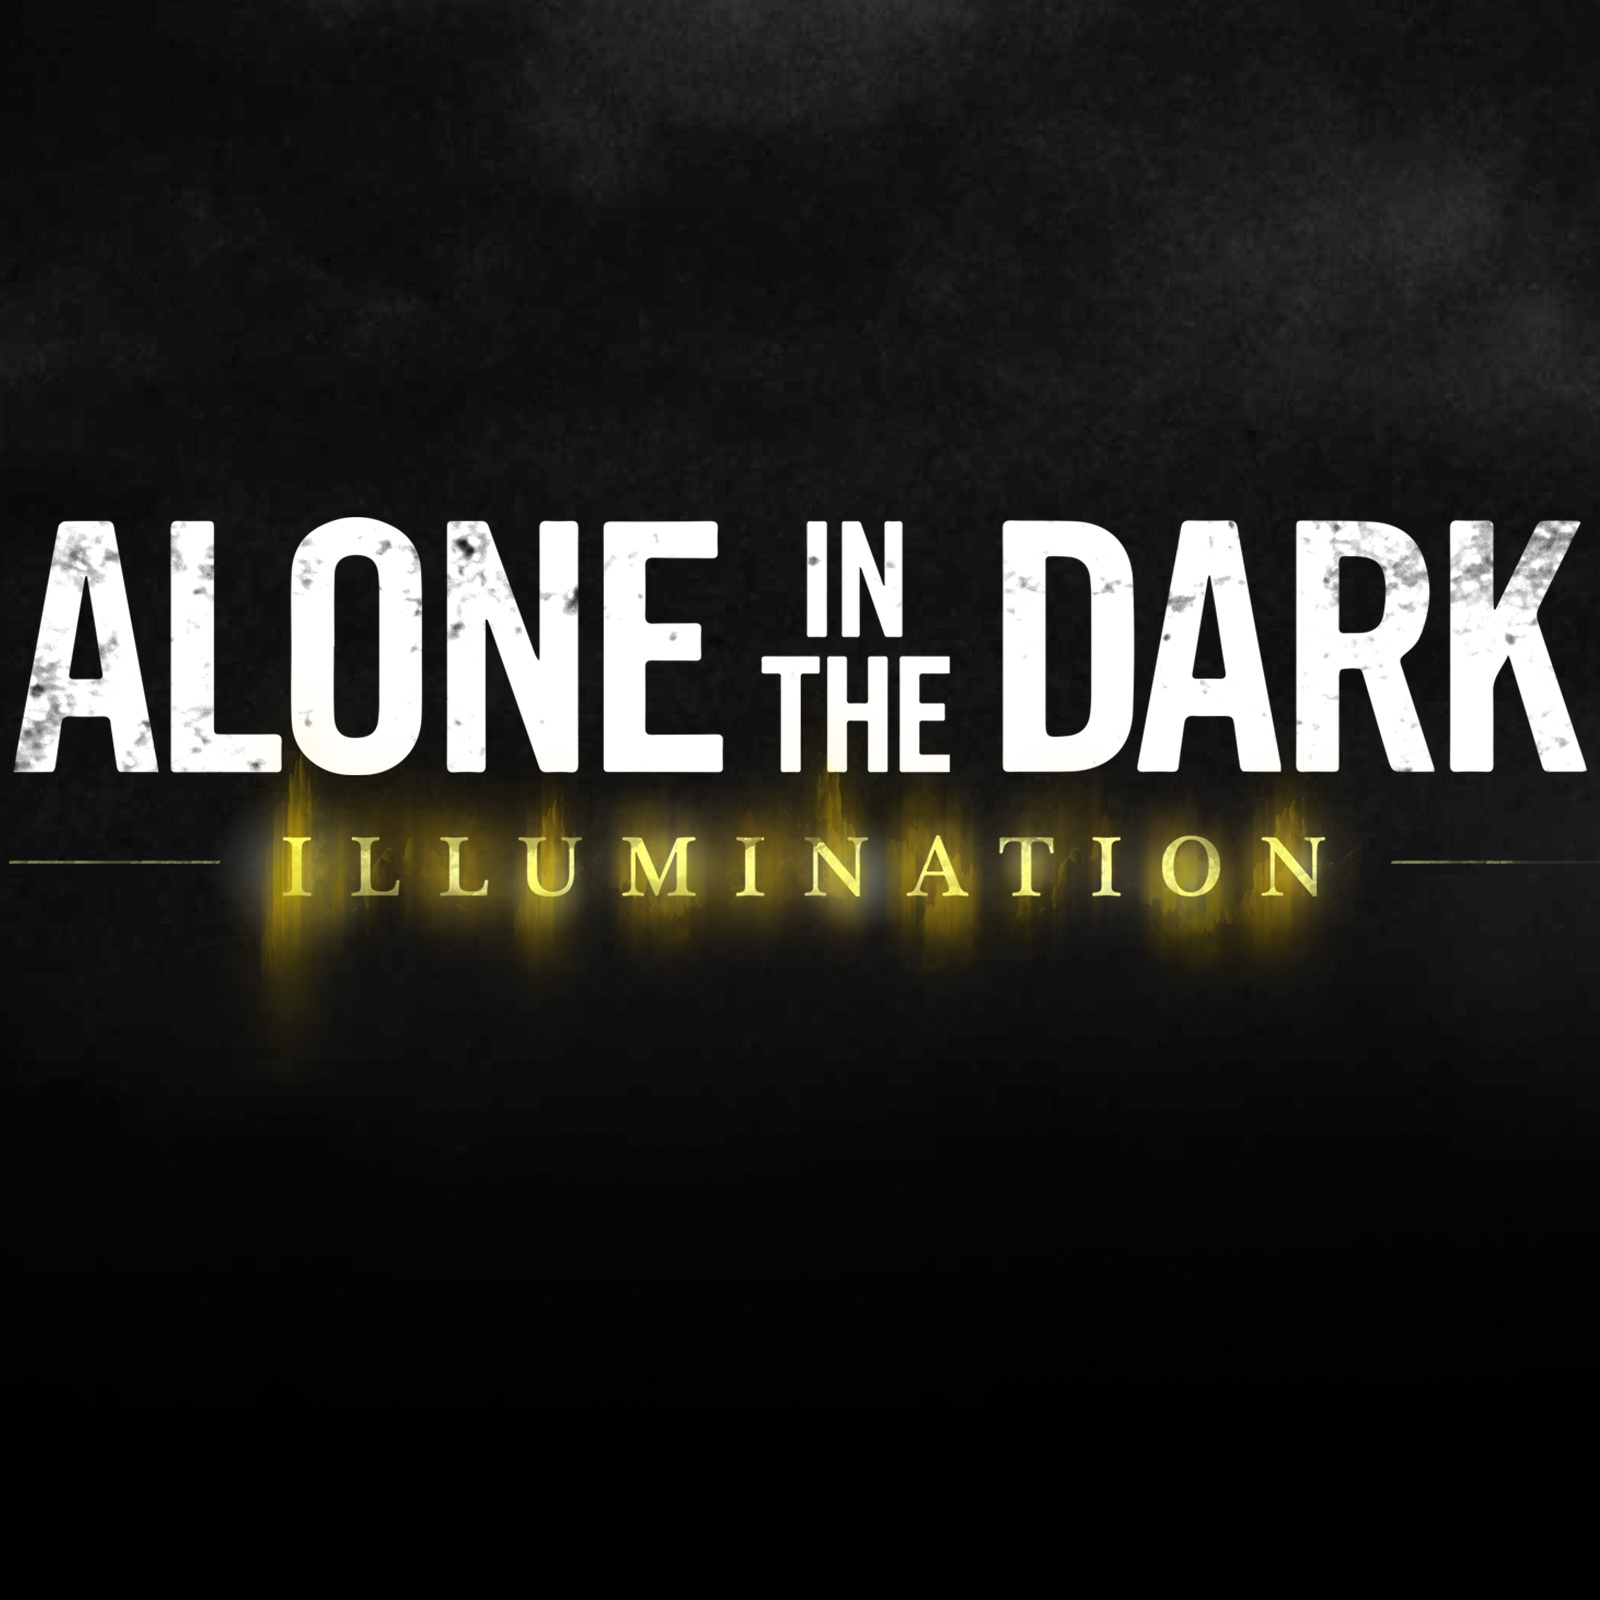 Alone In The Dark Illumination Wallpapers Video Game Hq Alone In The Dark Illumination Pictures 4k Wallpapers 2019